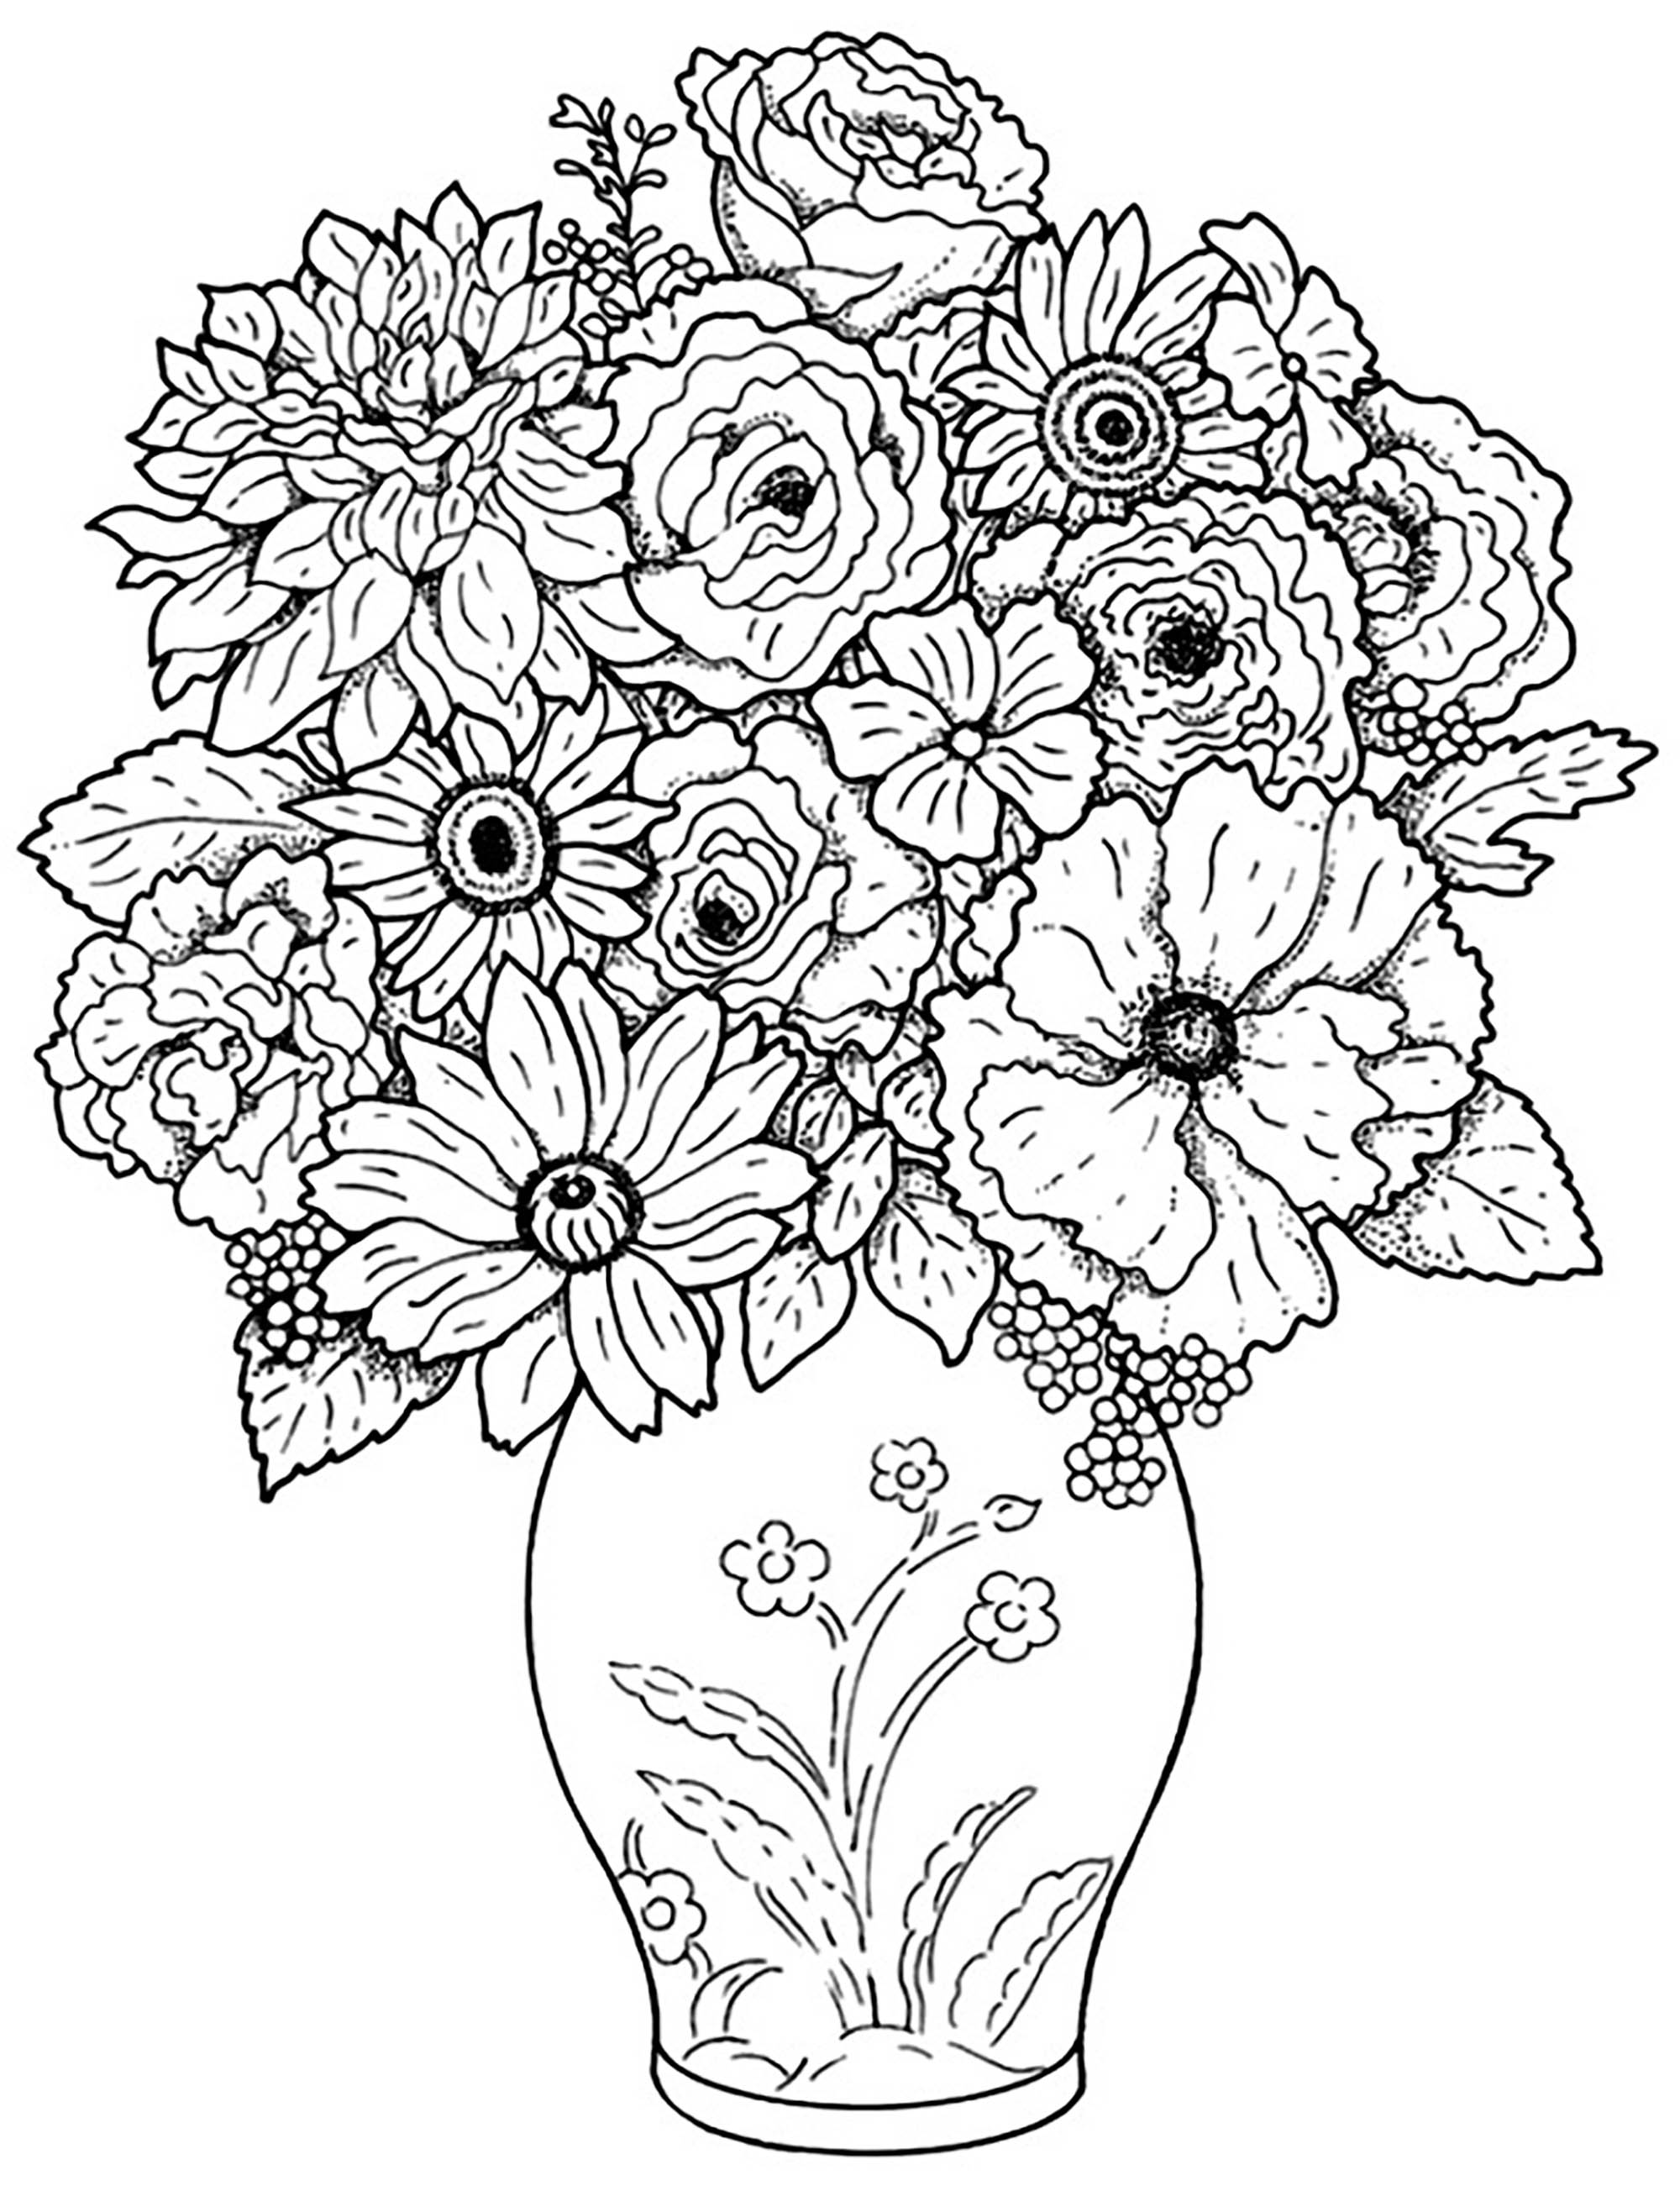 Simple Flowers Coloring Page To Print And Color For Free